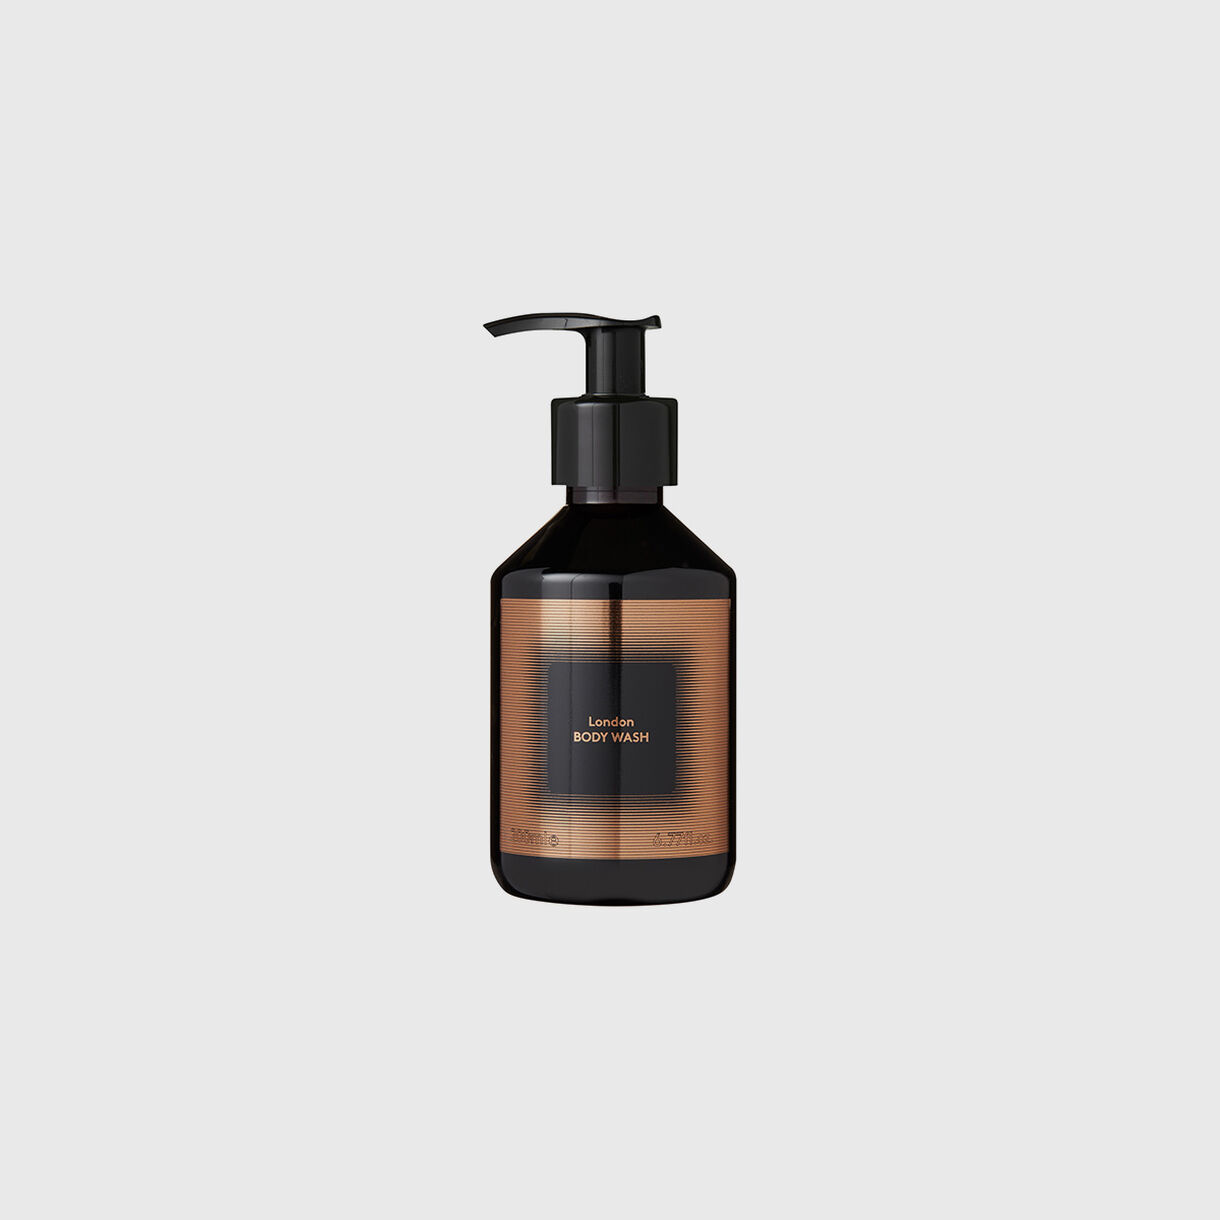 Eclectic London Body Wash, 200ml